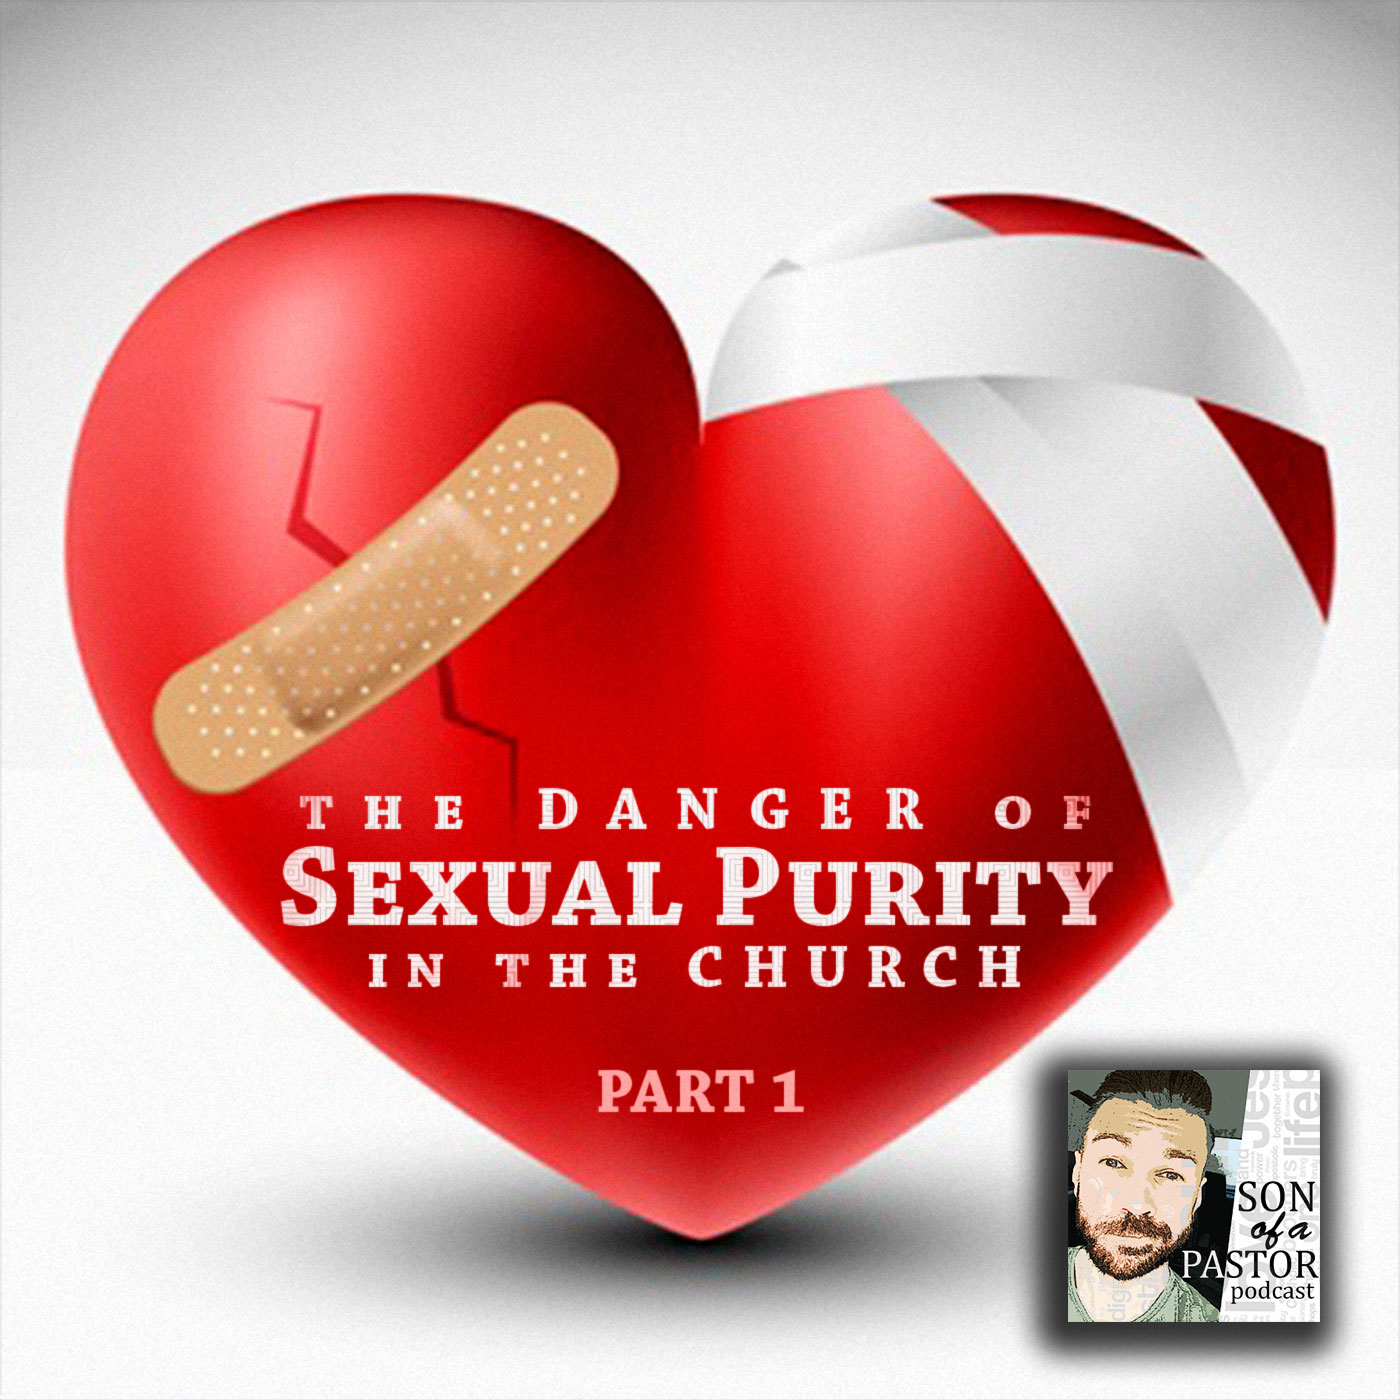 The Danger of Sexual Purity in the Church (Part 1) - Episode 26